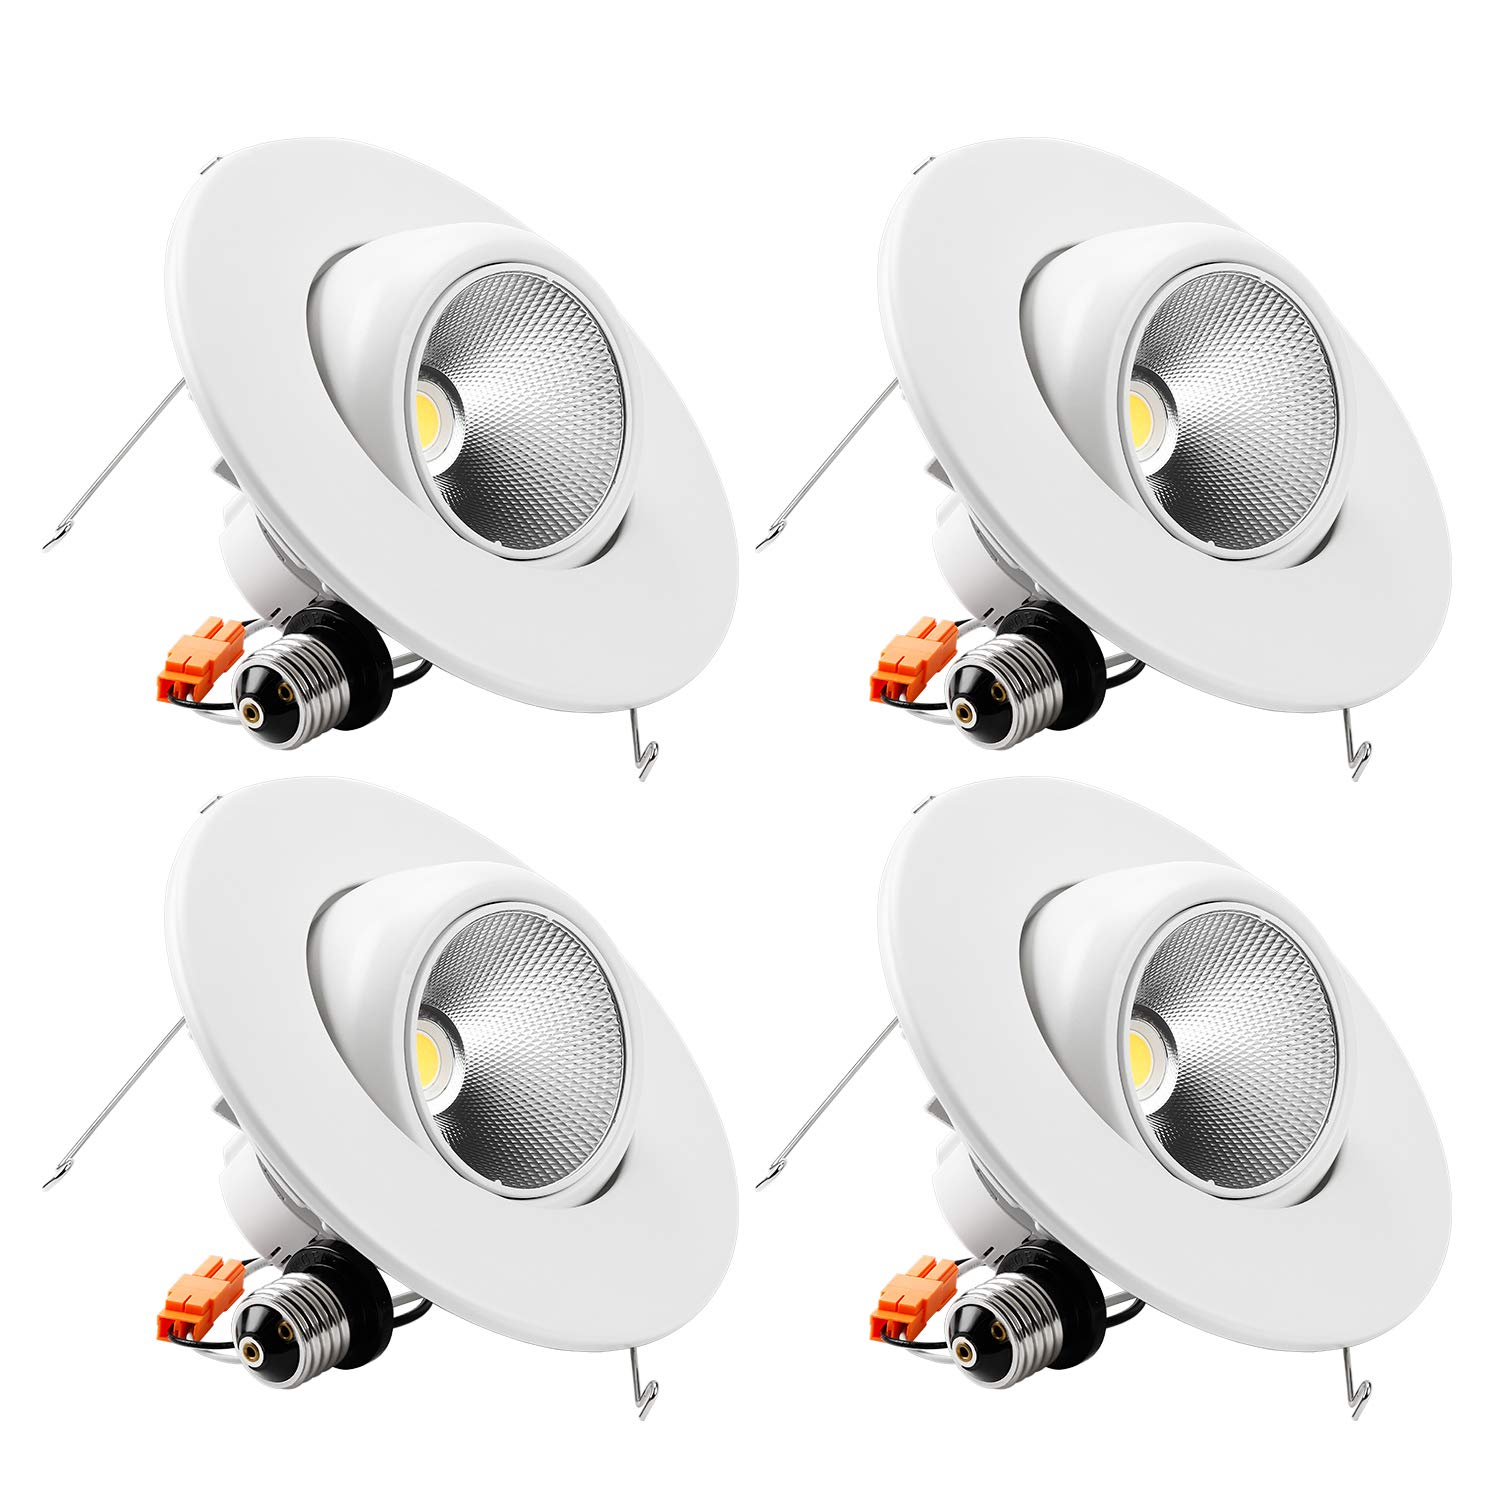 TORCHSTAR High CRI90+ 6inch Dimmable Gimbal Recessed LED Downlight, 10W (75W Equiv.), ENERGY STAR, 5000K Daylight, 950lm, Adjustable LED Retrofit Lighting Fixture, 5 YEARS WARRANTY, Pack of 4 by TORCHSTAR (Image #1)